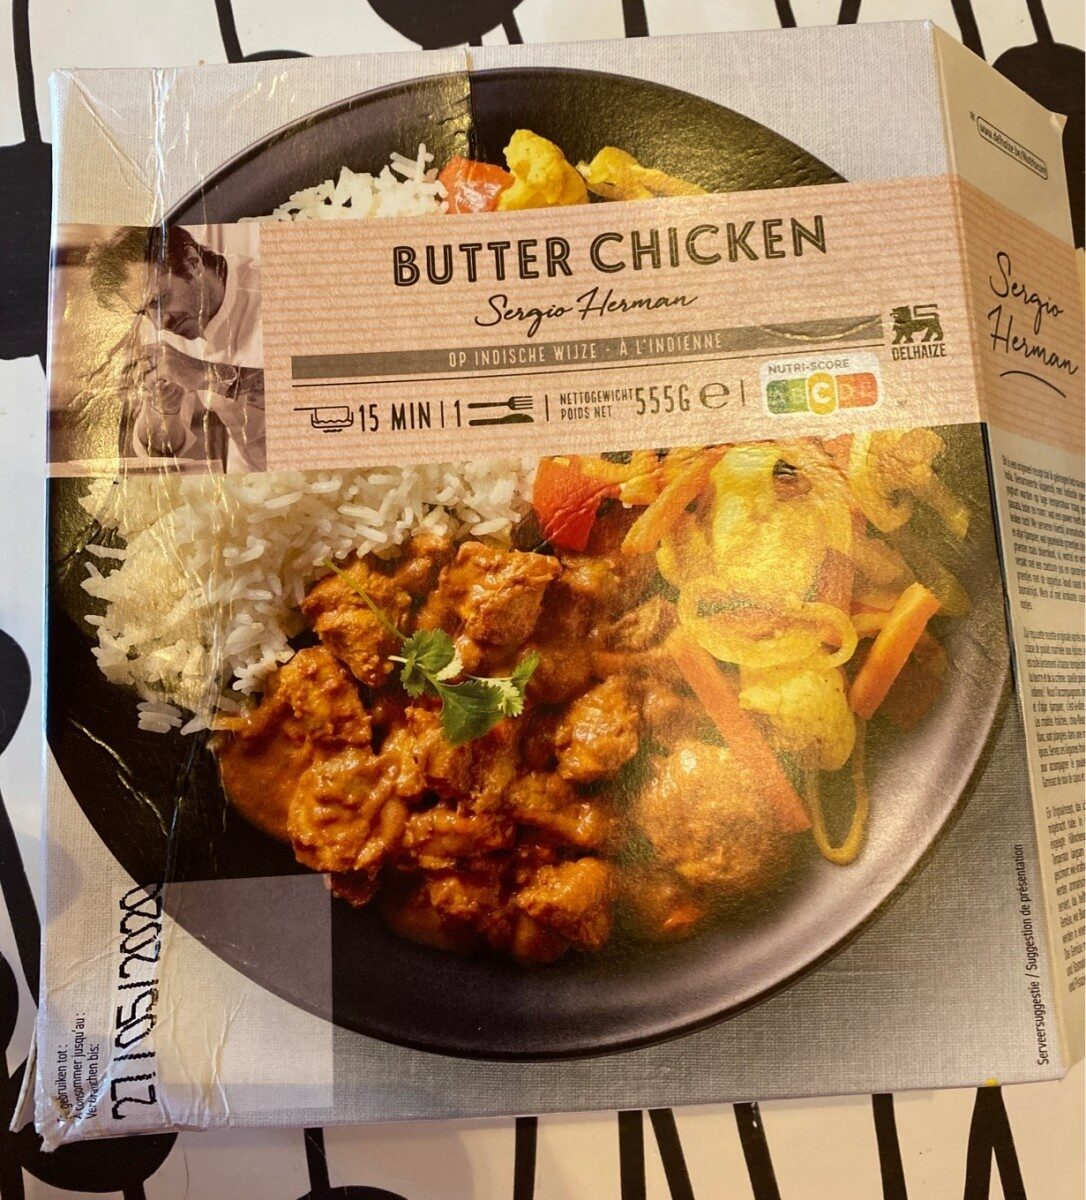 Butter chiken, Sergio Herman a l'indienne - Product - fr